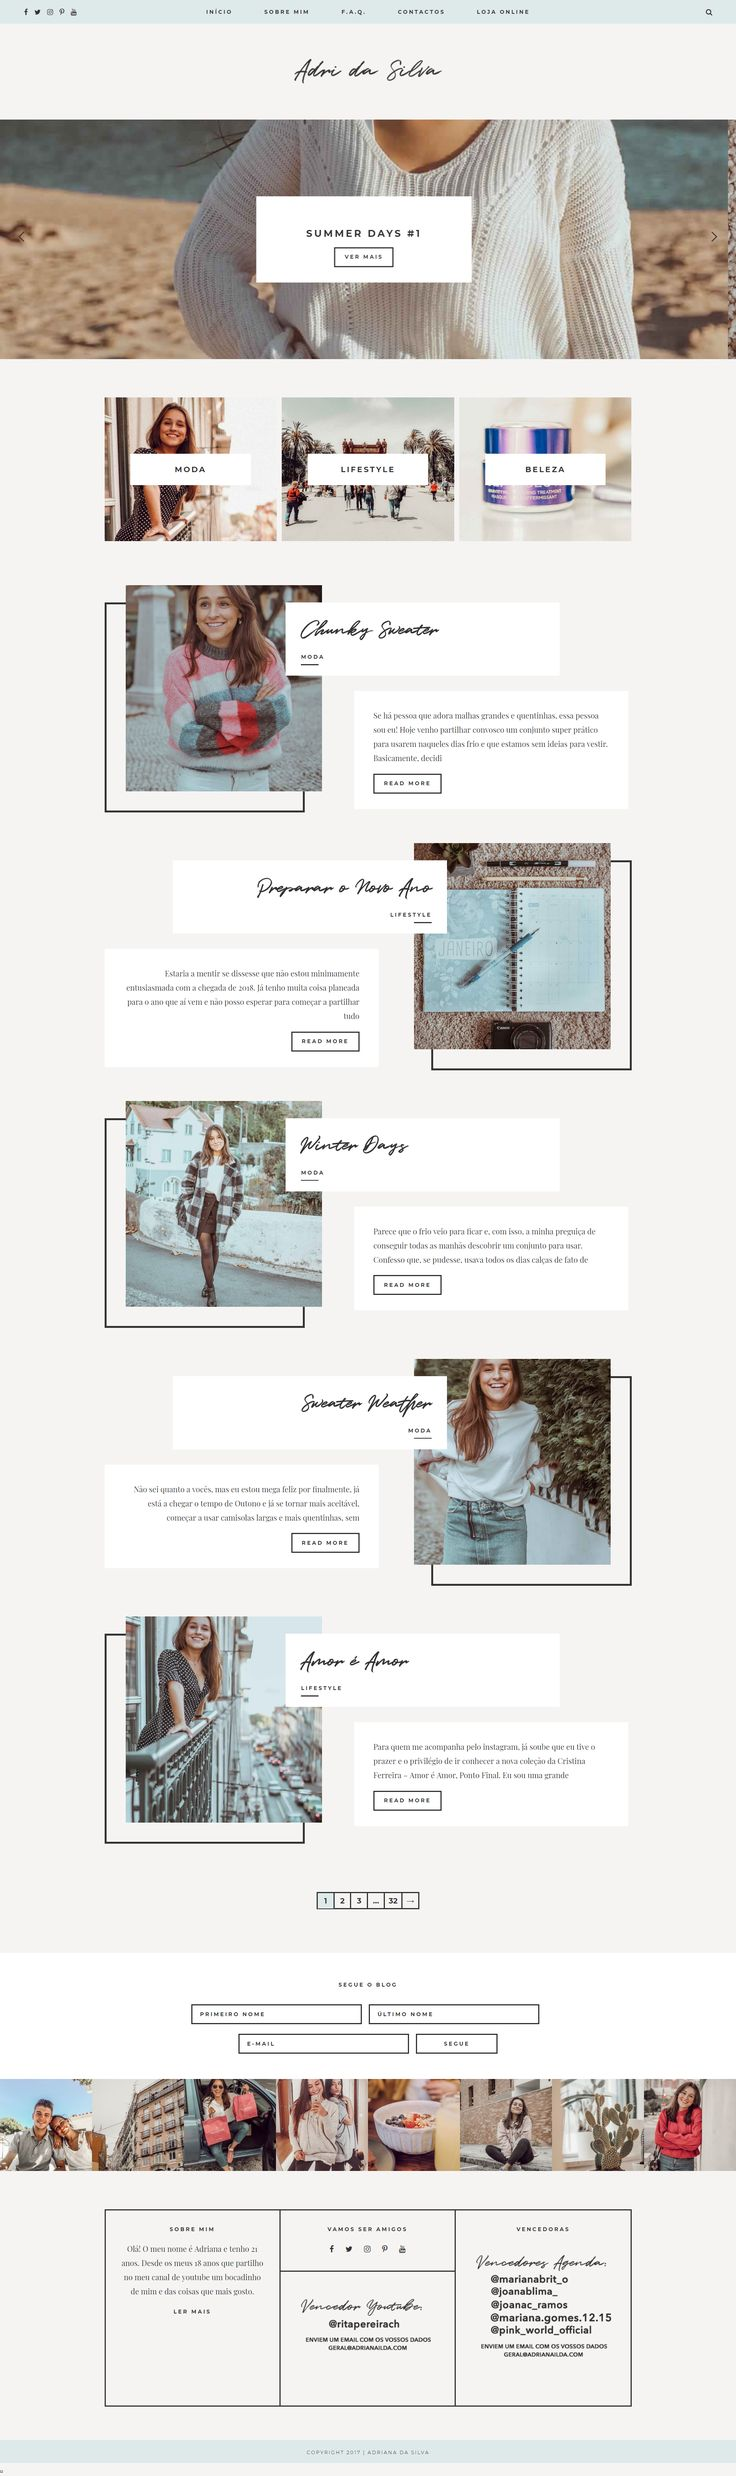 Perfect for use as a travel, lifestyle, or fashion blog, Oceanoid is the best premium WordPress theme for bloggers; easy to customize, a unique layout that will take your blog to the next level, and lots of styling options. Adri da Silva is an amazing blogger and her new site on Creative Summer Studio's Oceanoid WordPress theme is so dreamy. wordpress theme wordpress design blog layout web design layout minimal layout minimal web design blog design